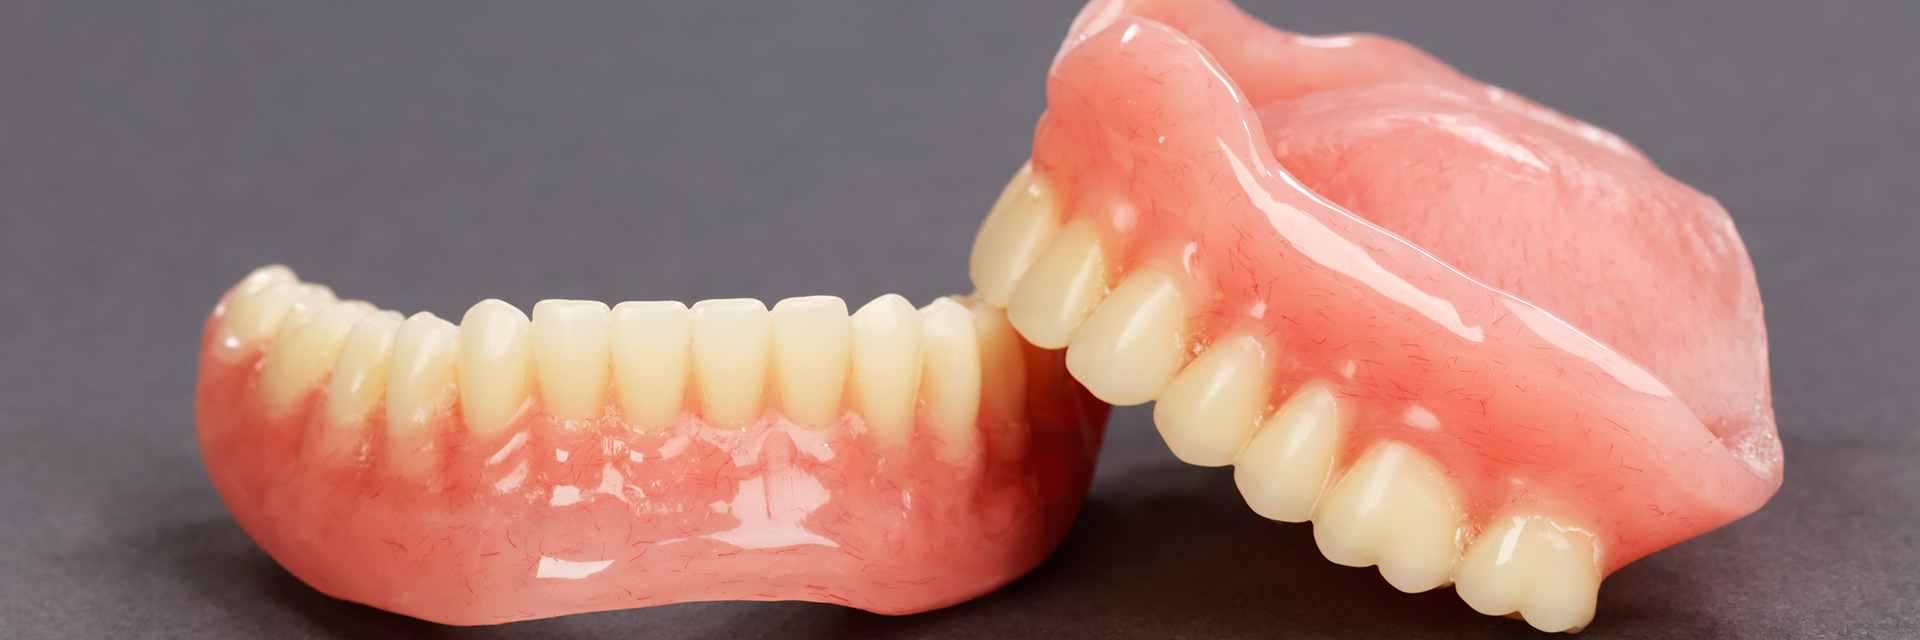 How Georgetown, TX area patients can care for their removable dentures